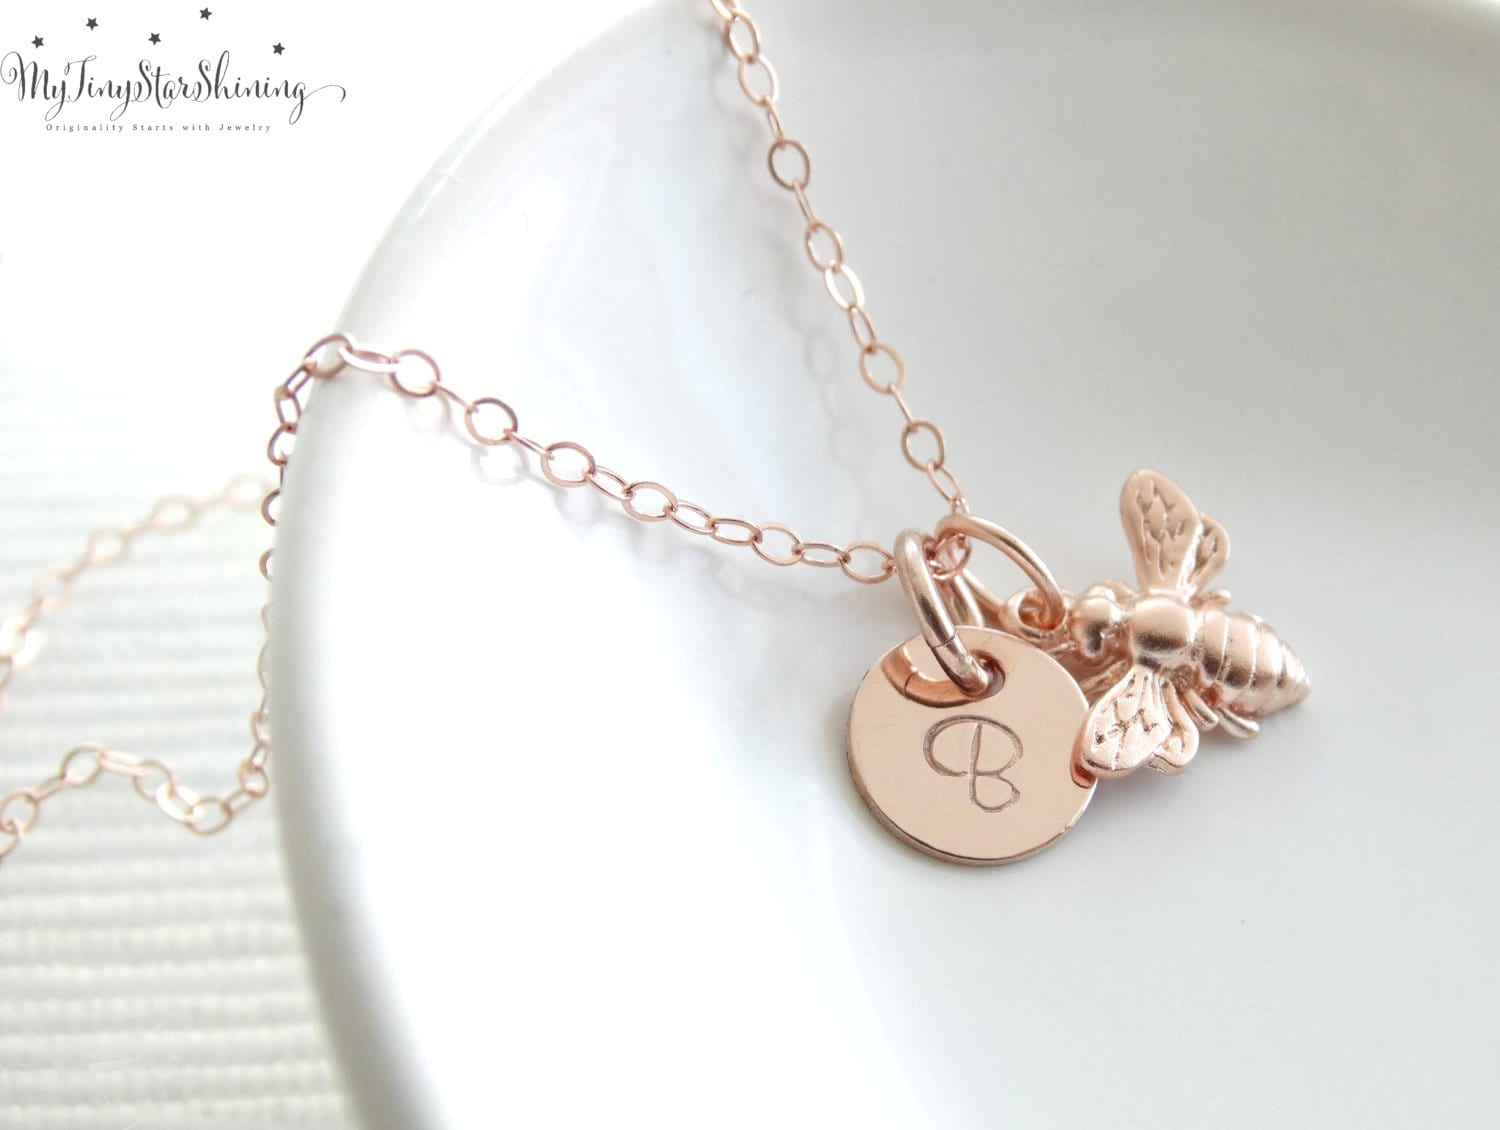 new lovely pendant honey crystal collier copper animal for jewelry lover in suspension pendants wholesale women necklaces item gift bee natural stone bumble from